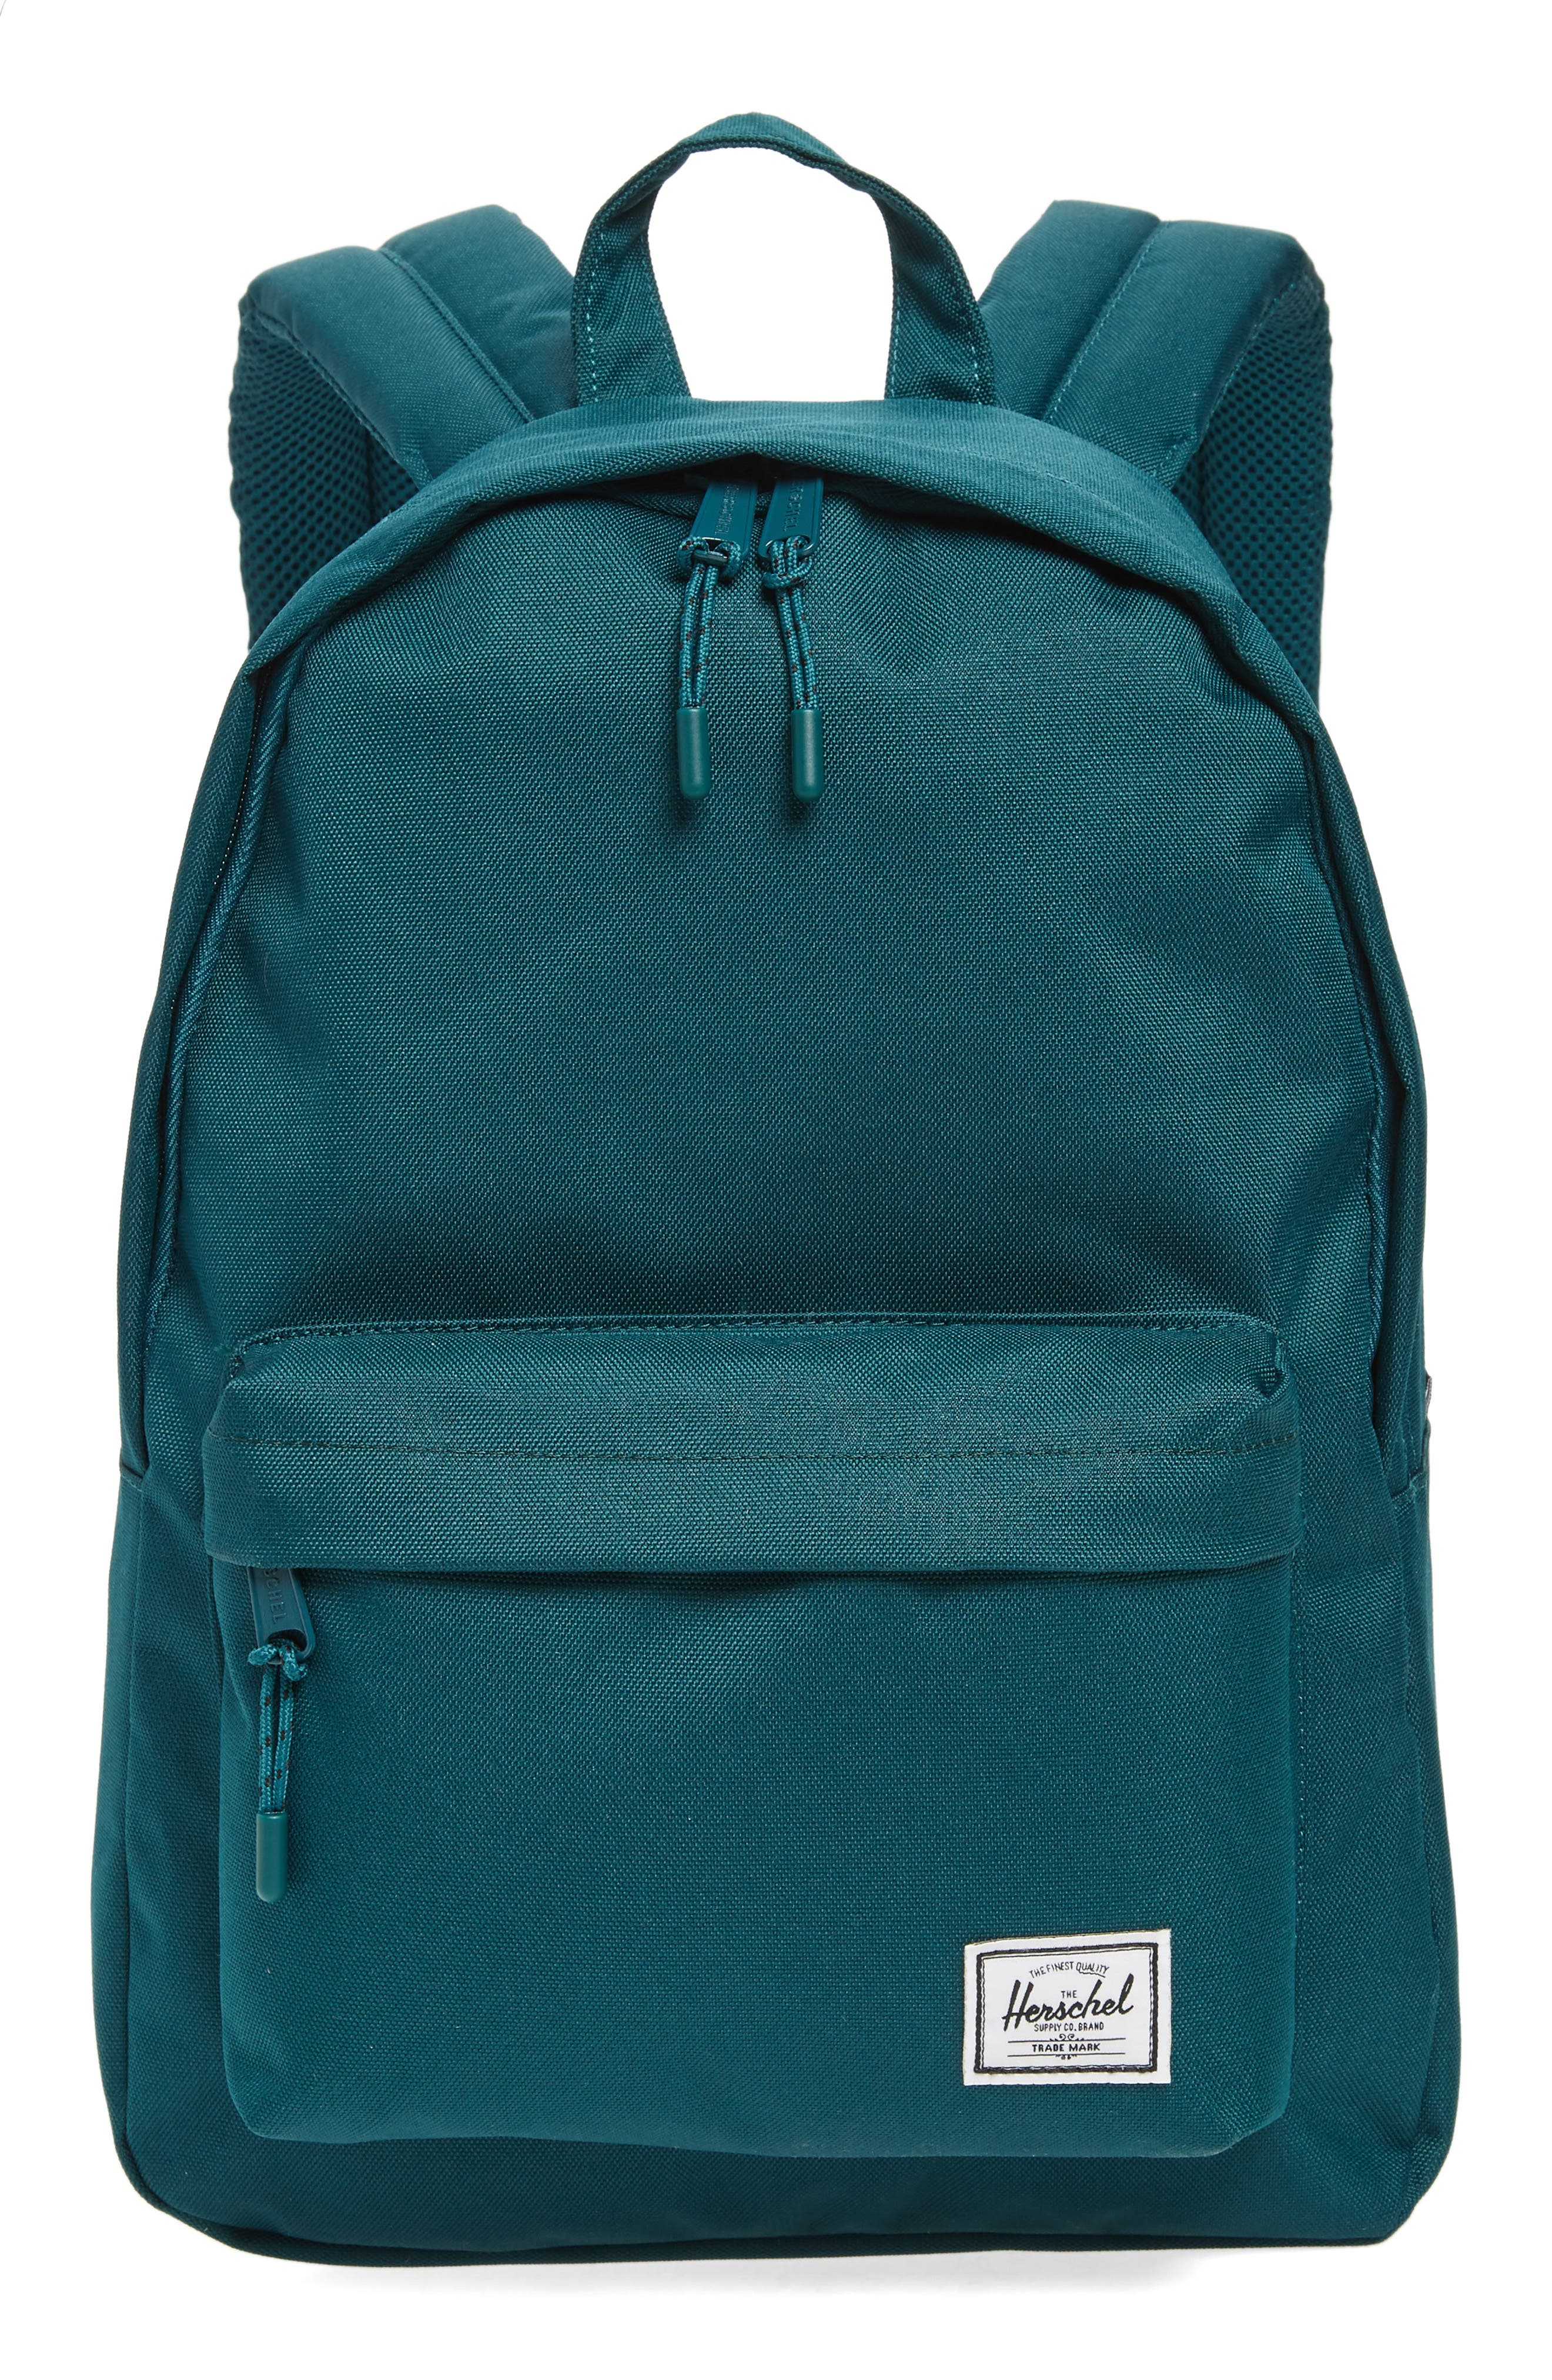 CLASSIC MID VOLUME BACKPACK - BLUE